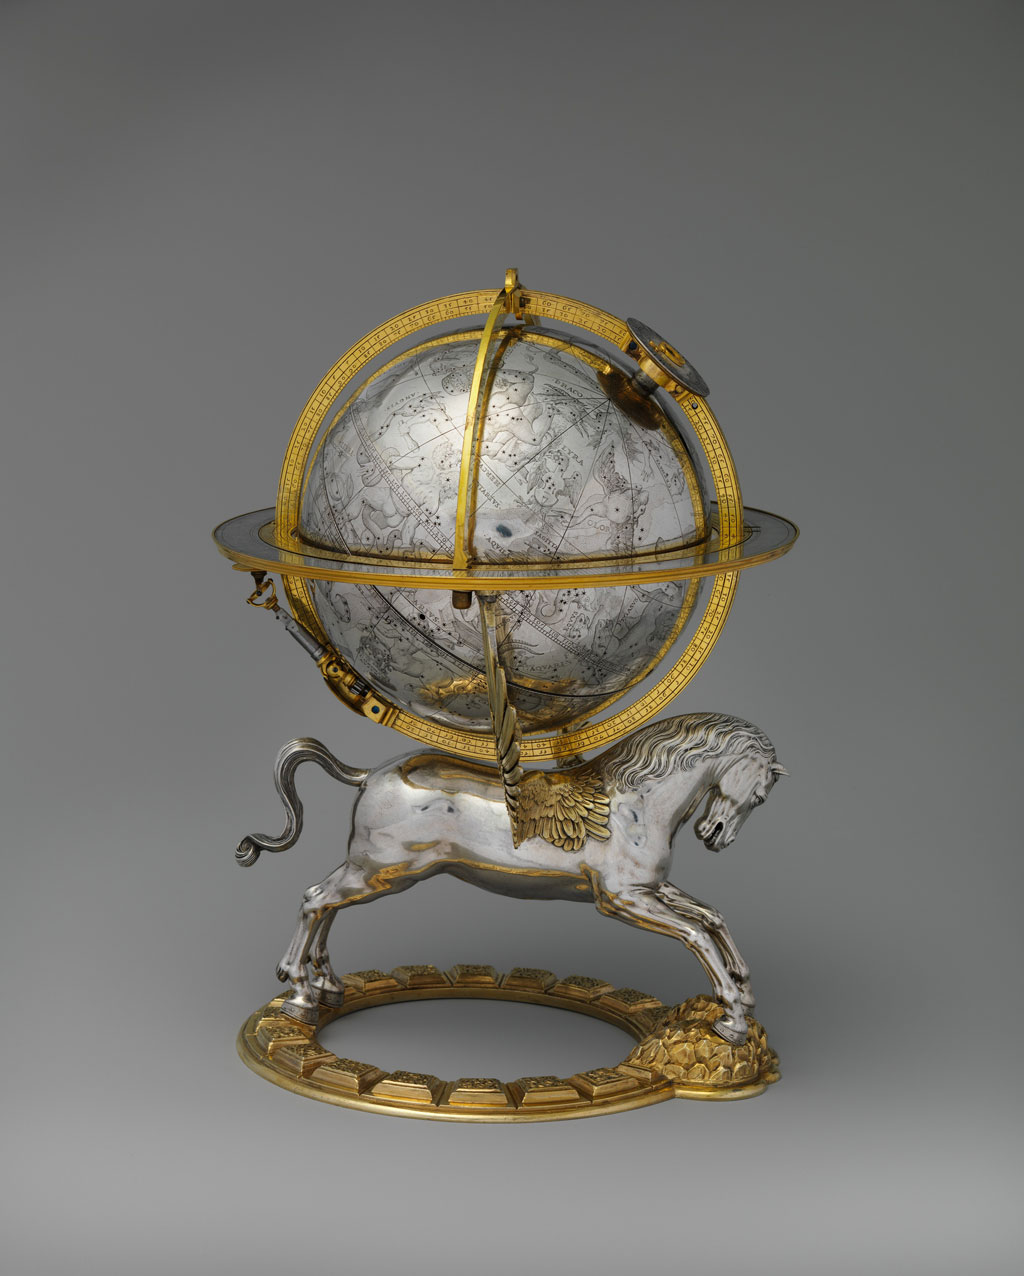 highlights from the met's collection (10)